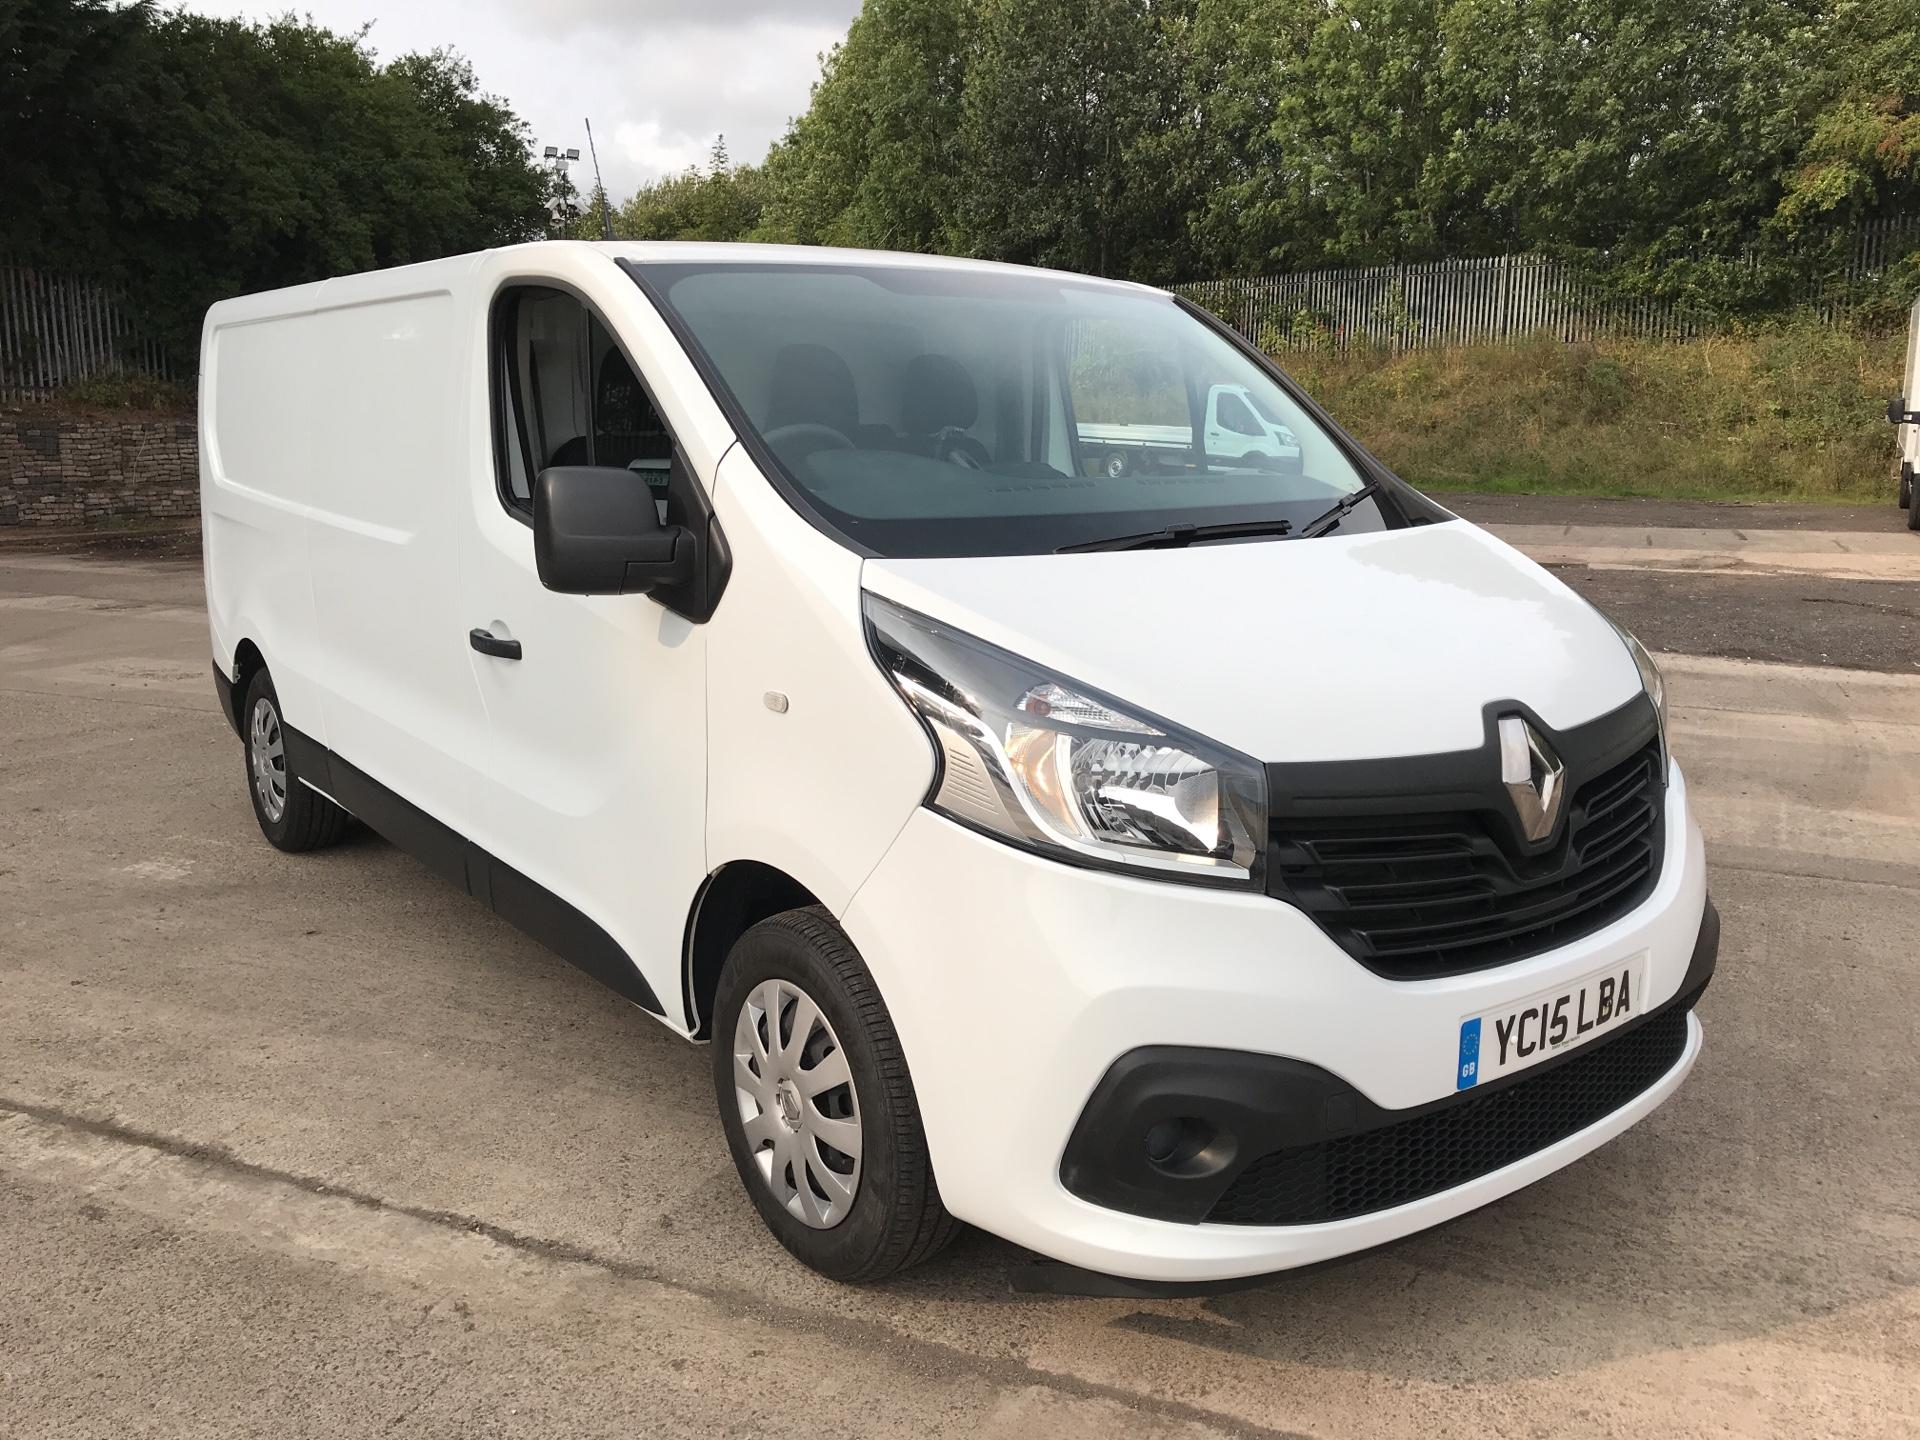 2015 Renault Trafic LWB LL29 ENERGY DCI 120PS BUSINESS+ AIR CON EURO 5 (YC15LBA)